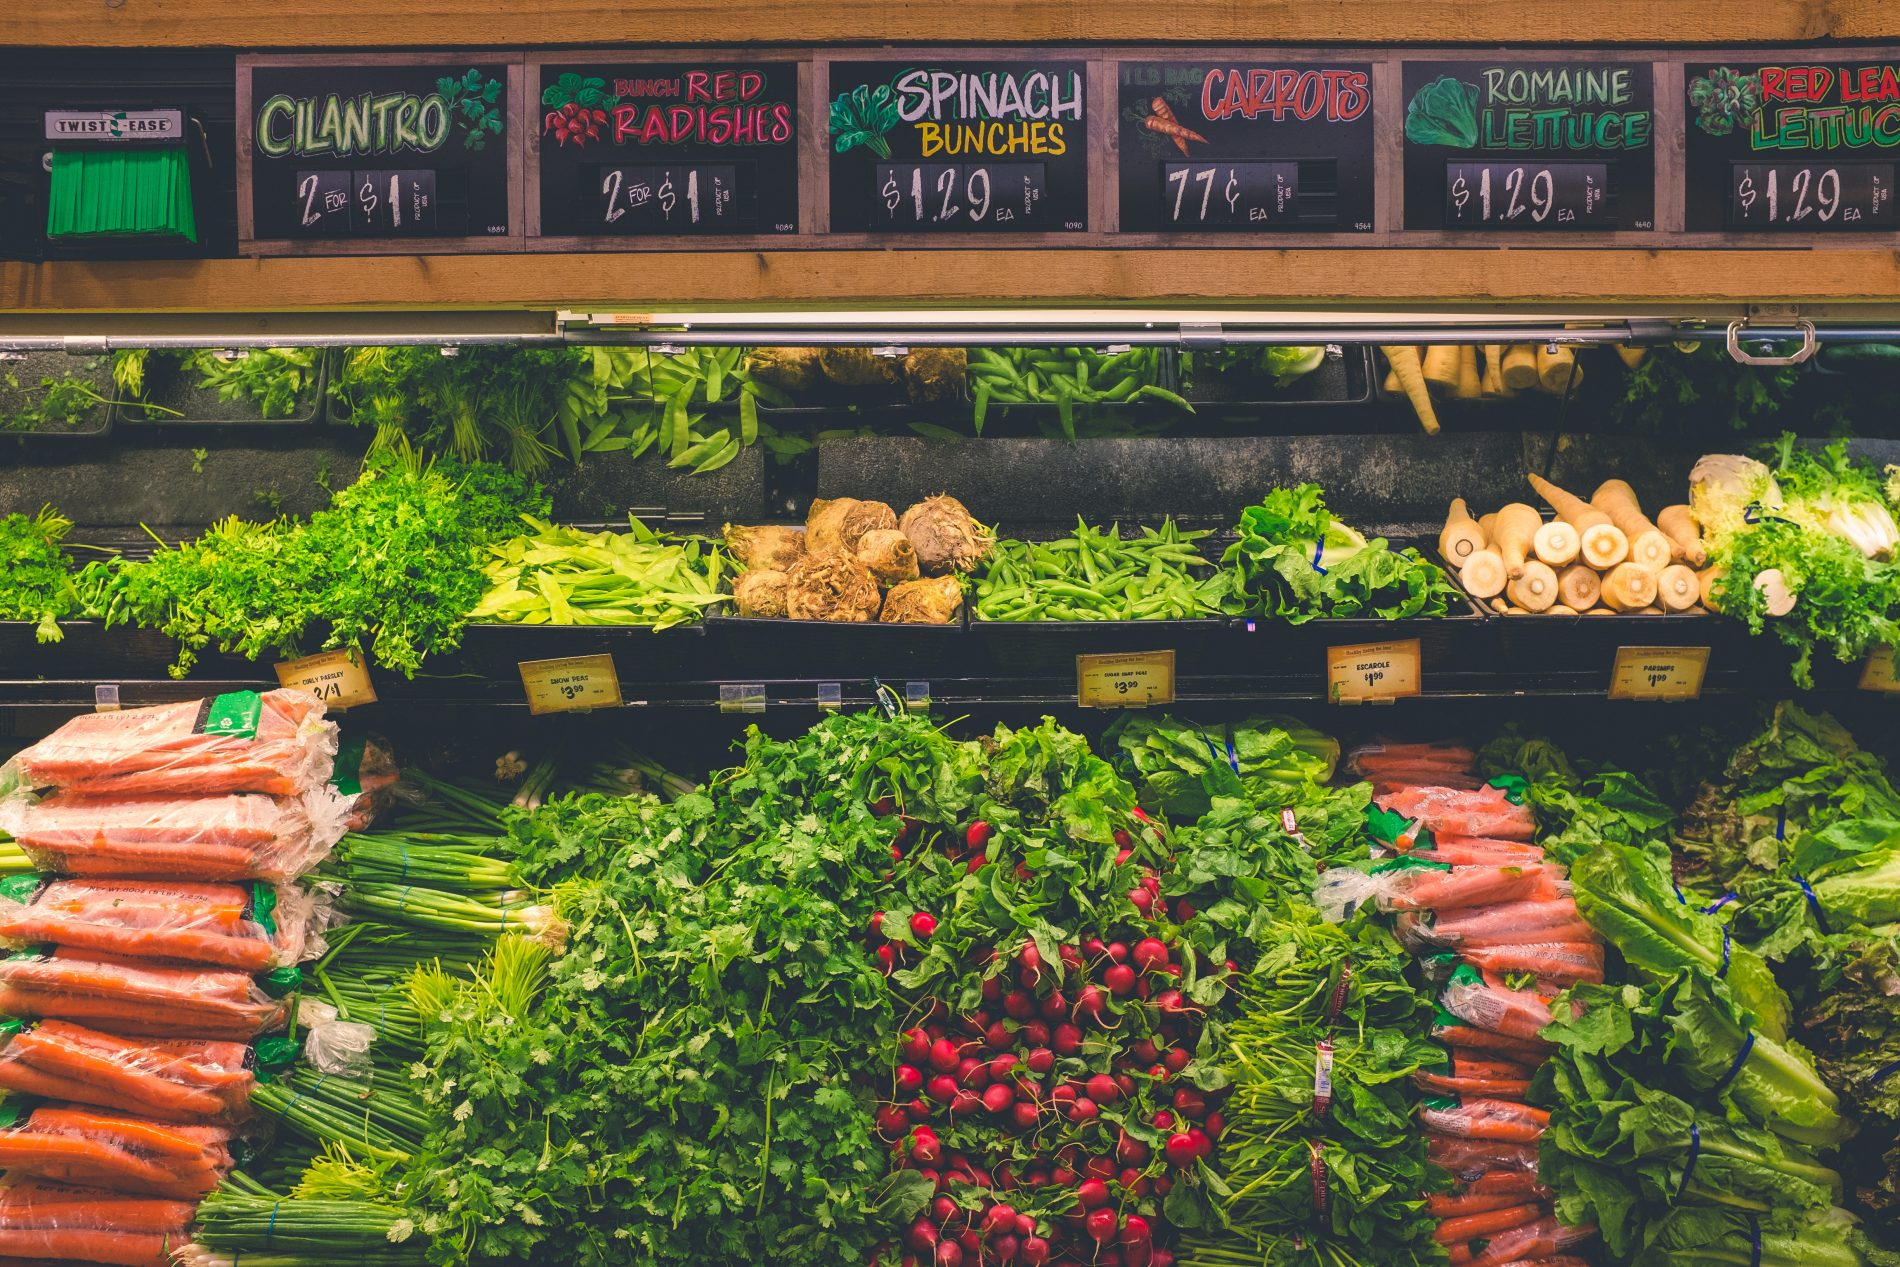 Why I Choose to Go to the Grocery Store (vs. delivery)